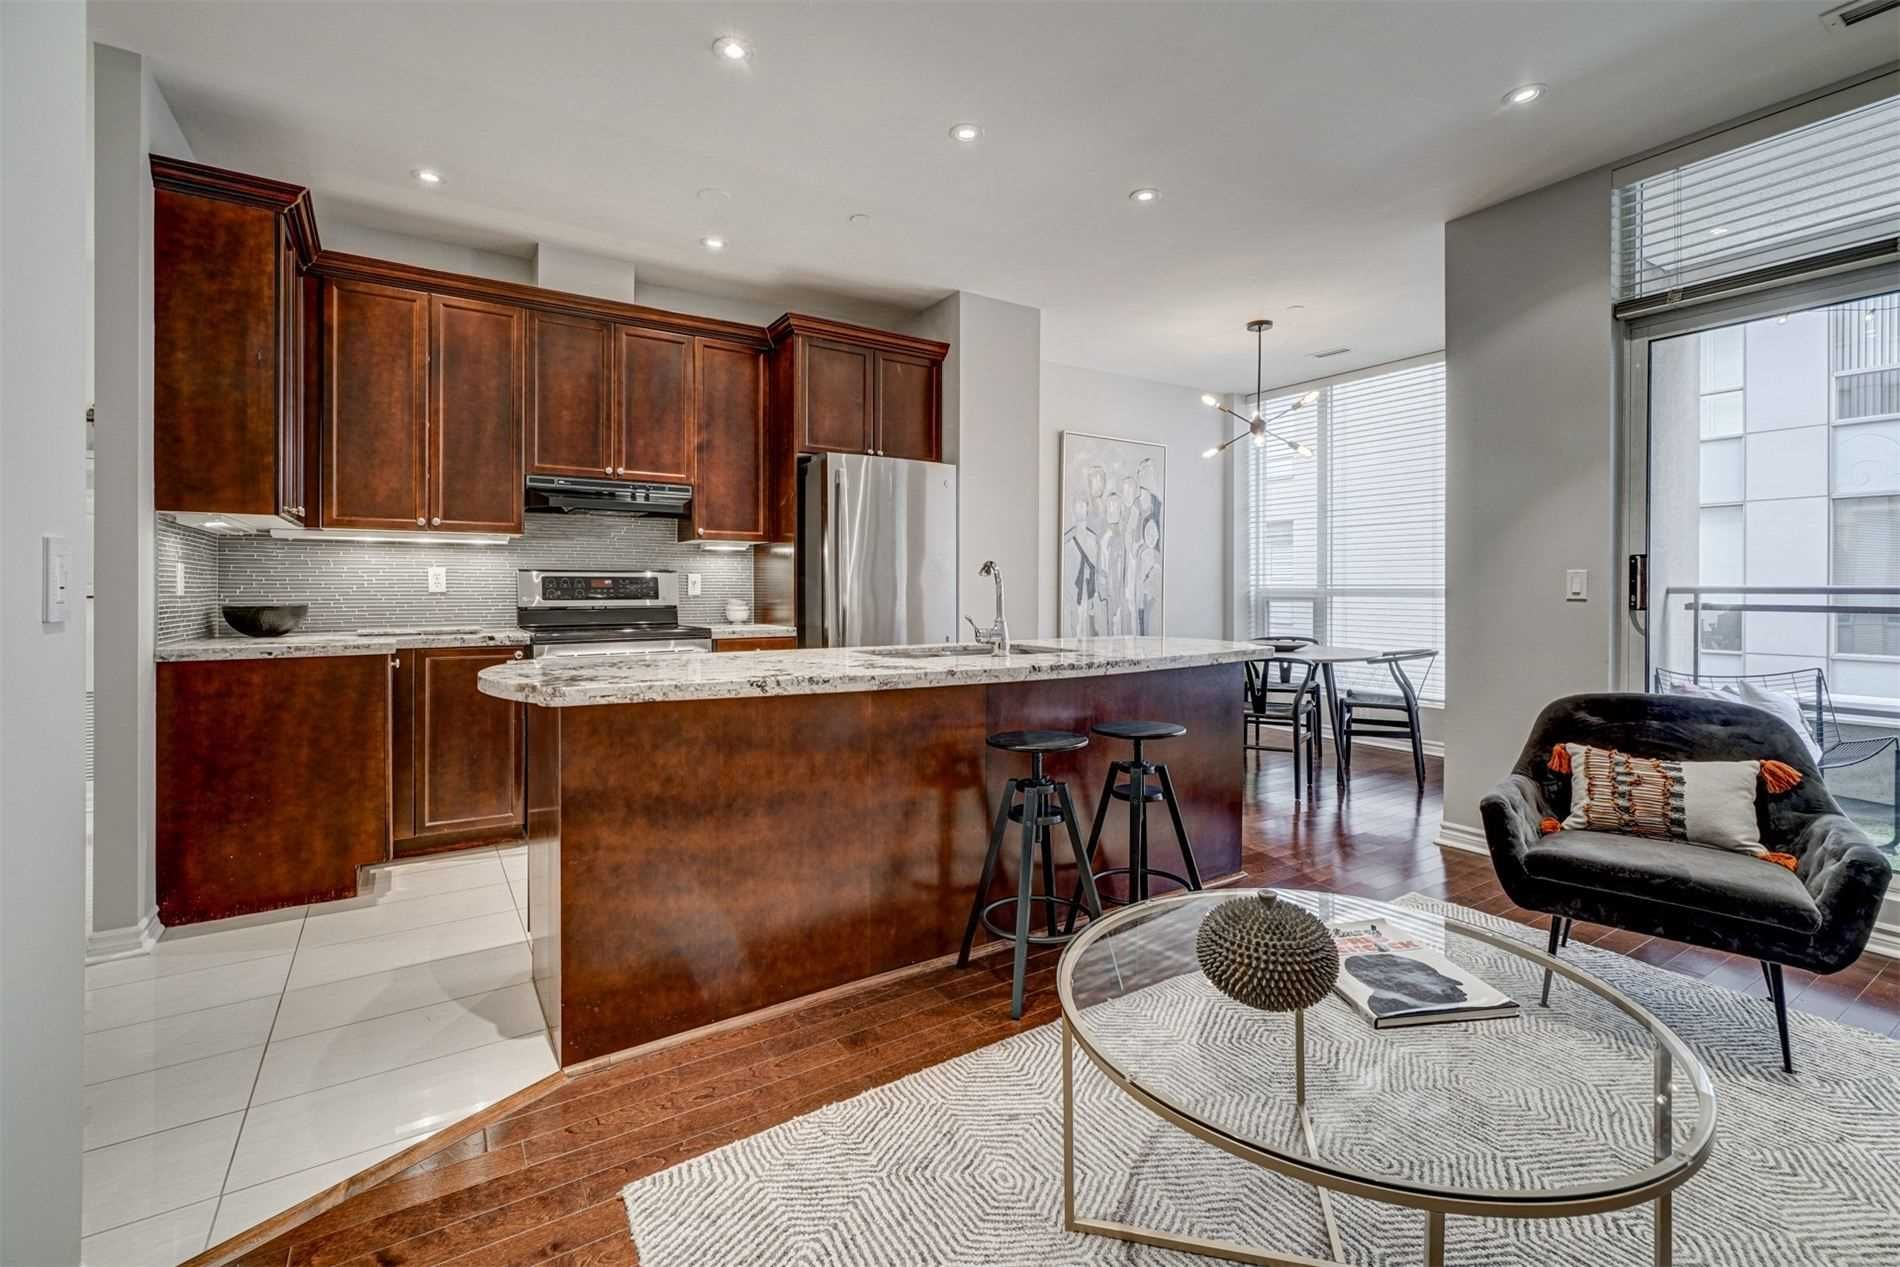 Main Photo: 407 980 Yonge Street in Toronto: Yonge-St. Clair Condo for sale (Toronto C02)  : MLS®# C5089034